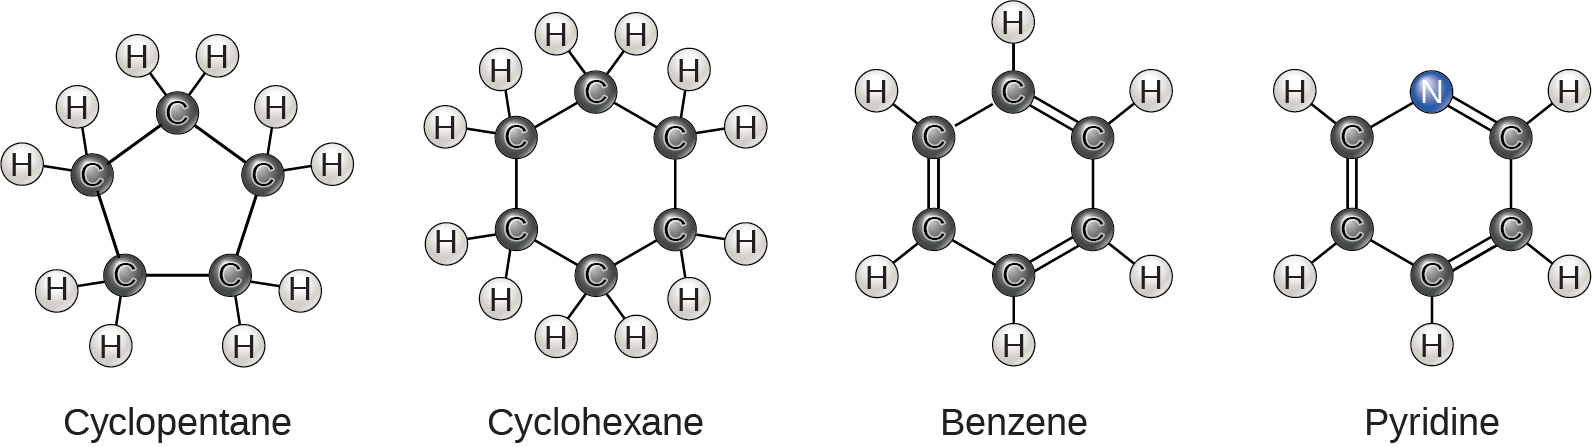 Four molecular structures are shown. Cyclopentane is a ring consisting of five carbons, each with two hydrogens attached. Cyclohexane is a ring of six carbons, each with two hydrogens attached. Benzene is a six-carbon ring with alternating double bonds. Each carbon has one hydrogen attached. Pyridine is the same as benzene, but a nitrogen is substituted for one of the carbons. No hydrogens are attached to the nitrogen.